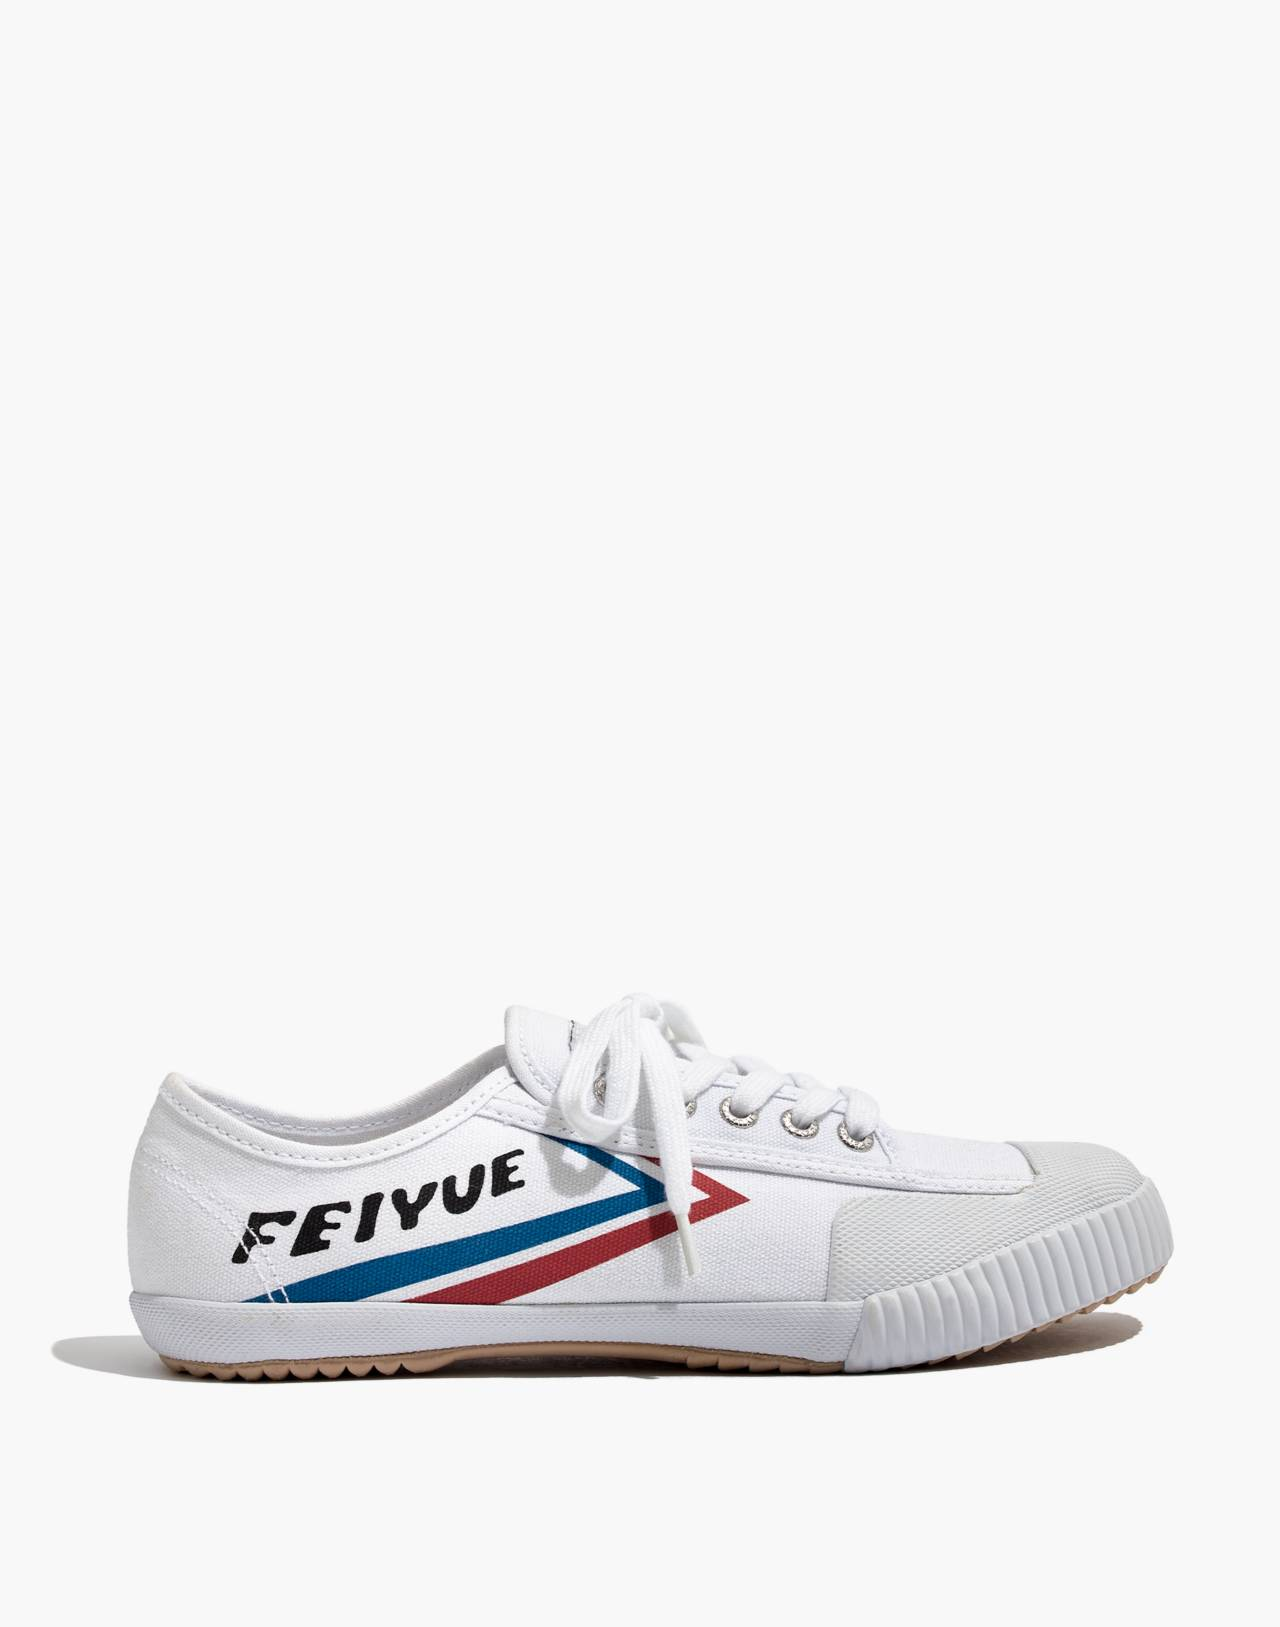 Feiyue® Fe Lo Classic Sneakers in white image 2